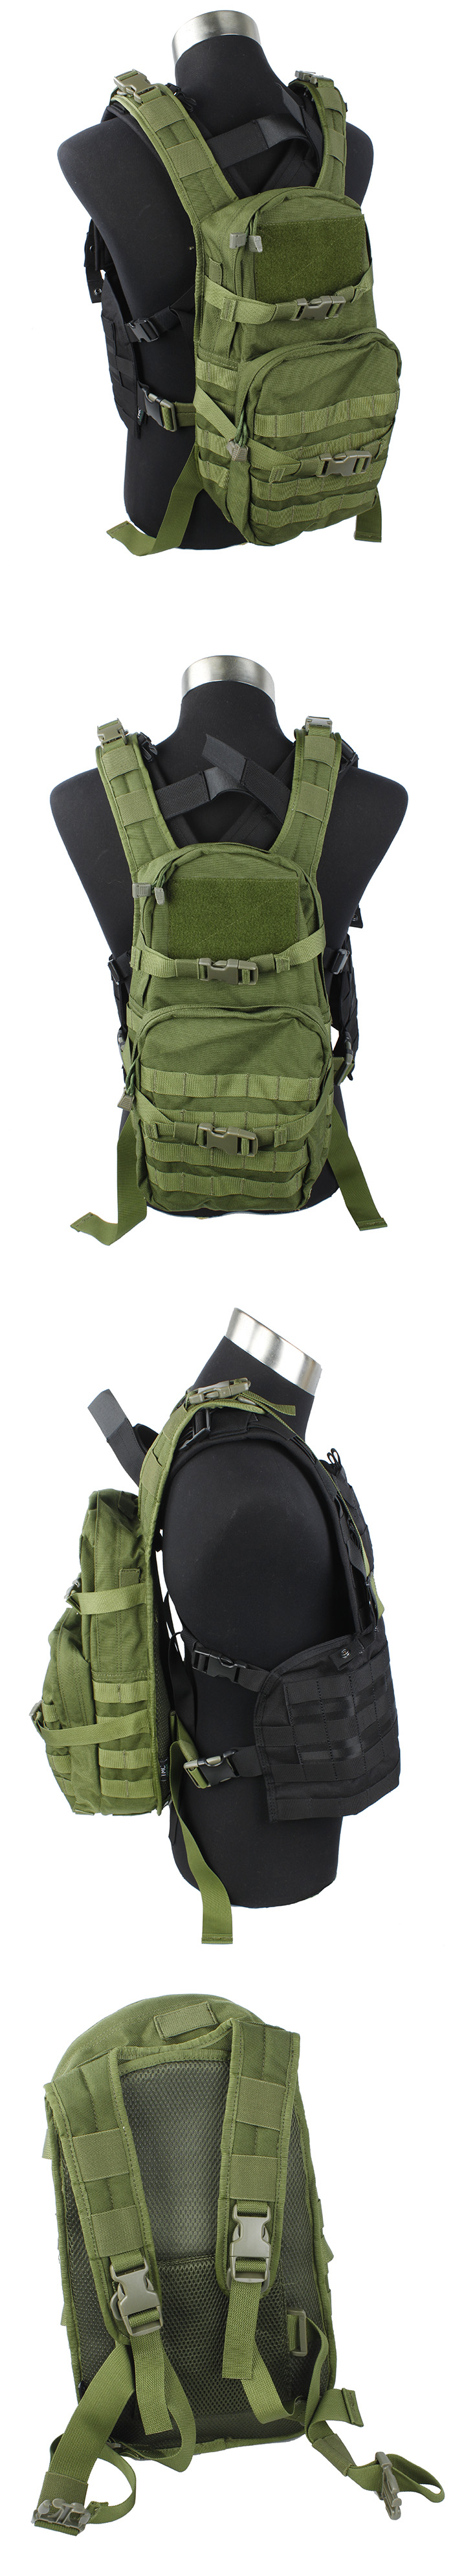 EbairSoft Airsoft parts & Tactical Gear - G TMC MOLLE Back ...